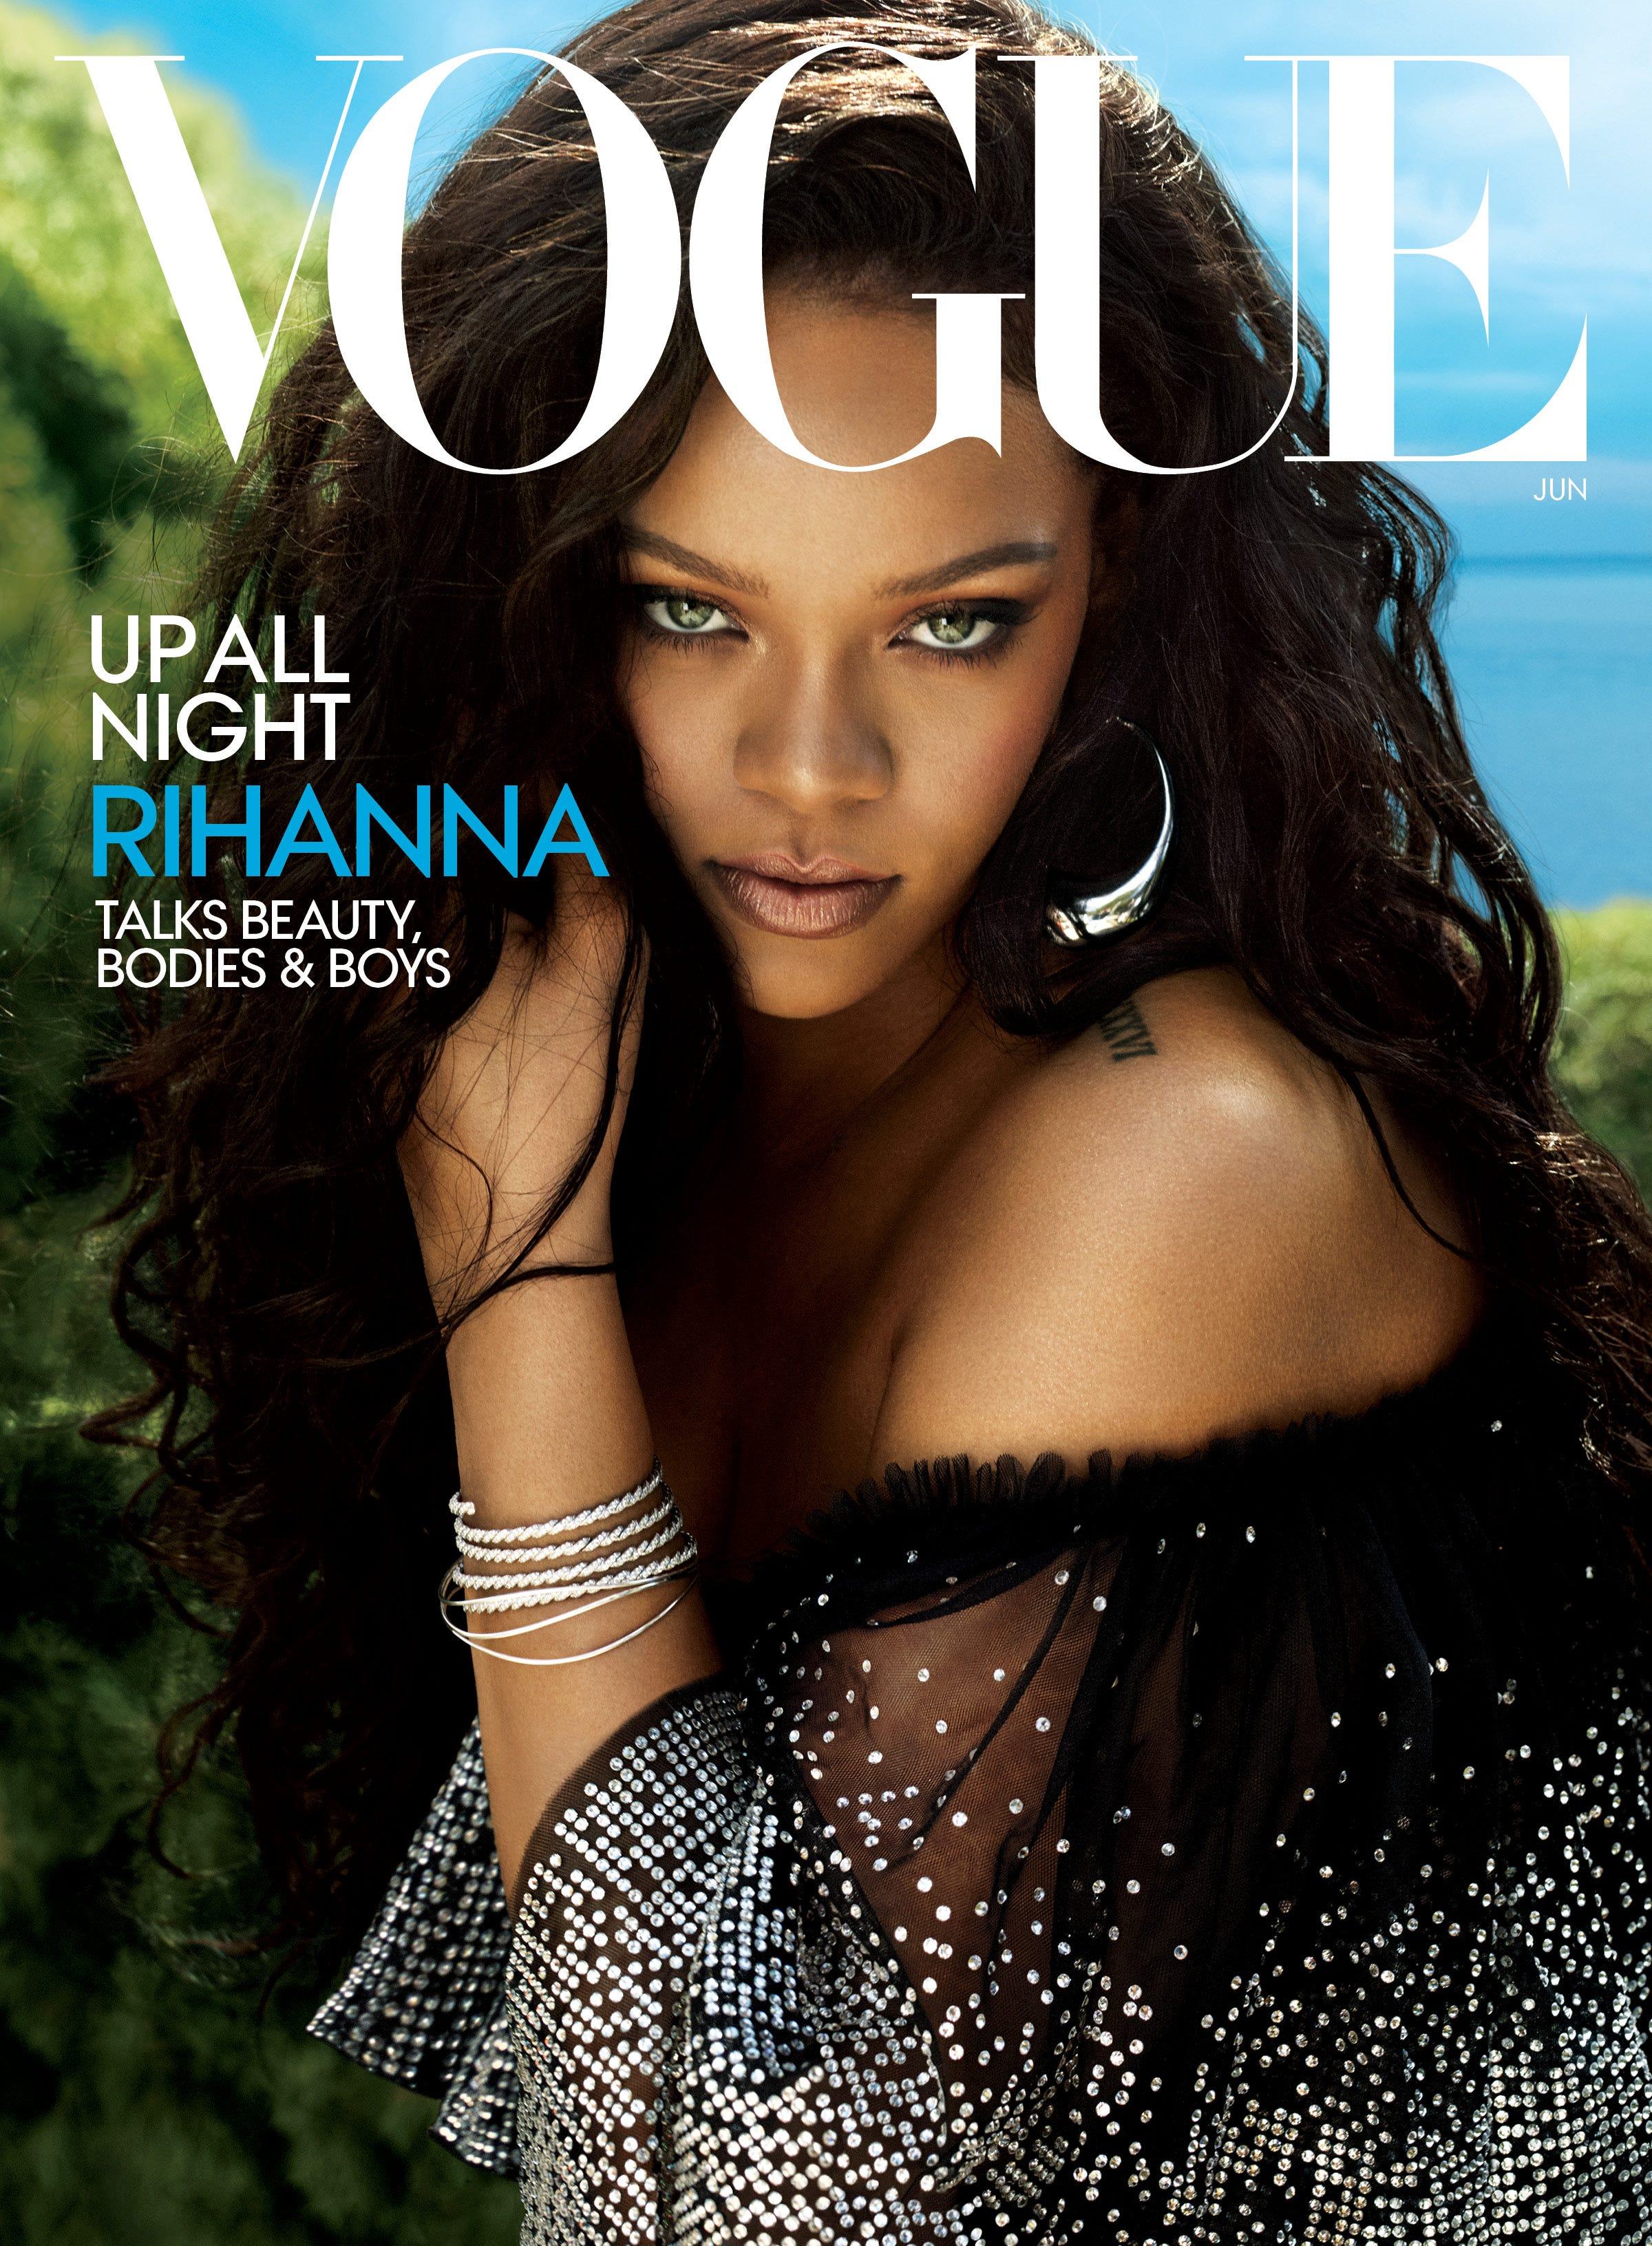 Who is rihanna dating now 2019